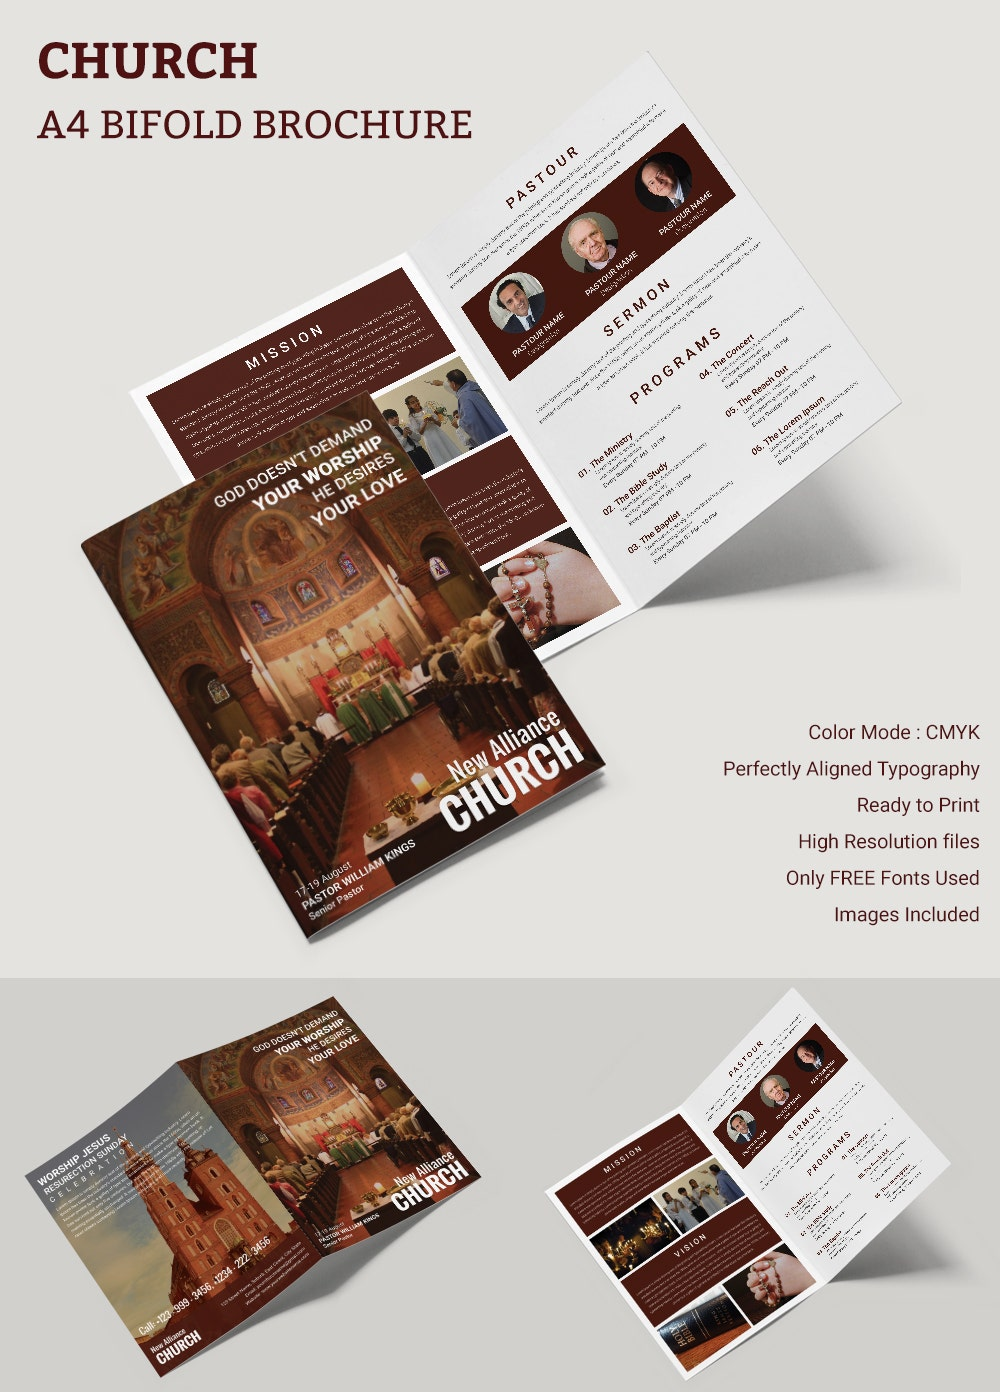 Church_A4_Bifold Brochure